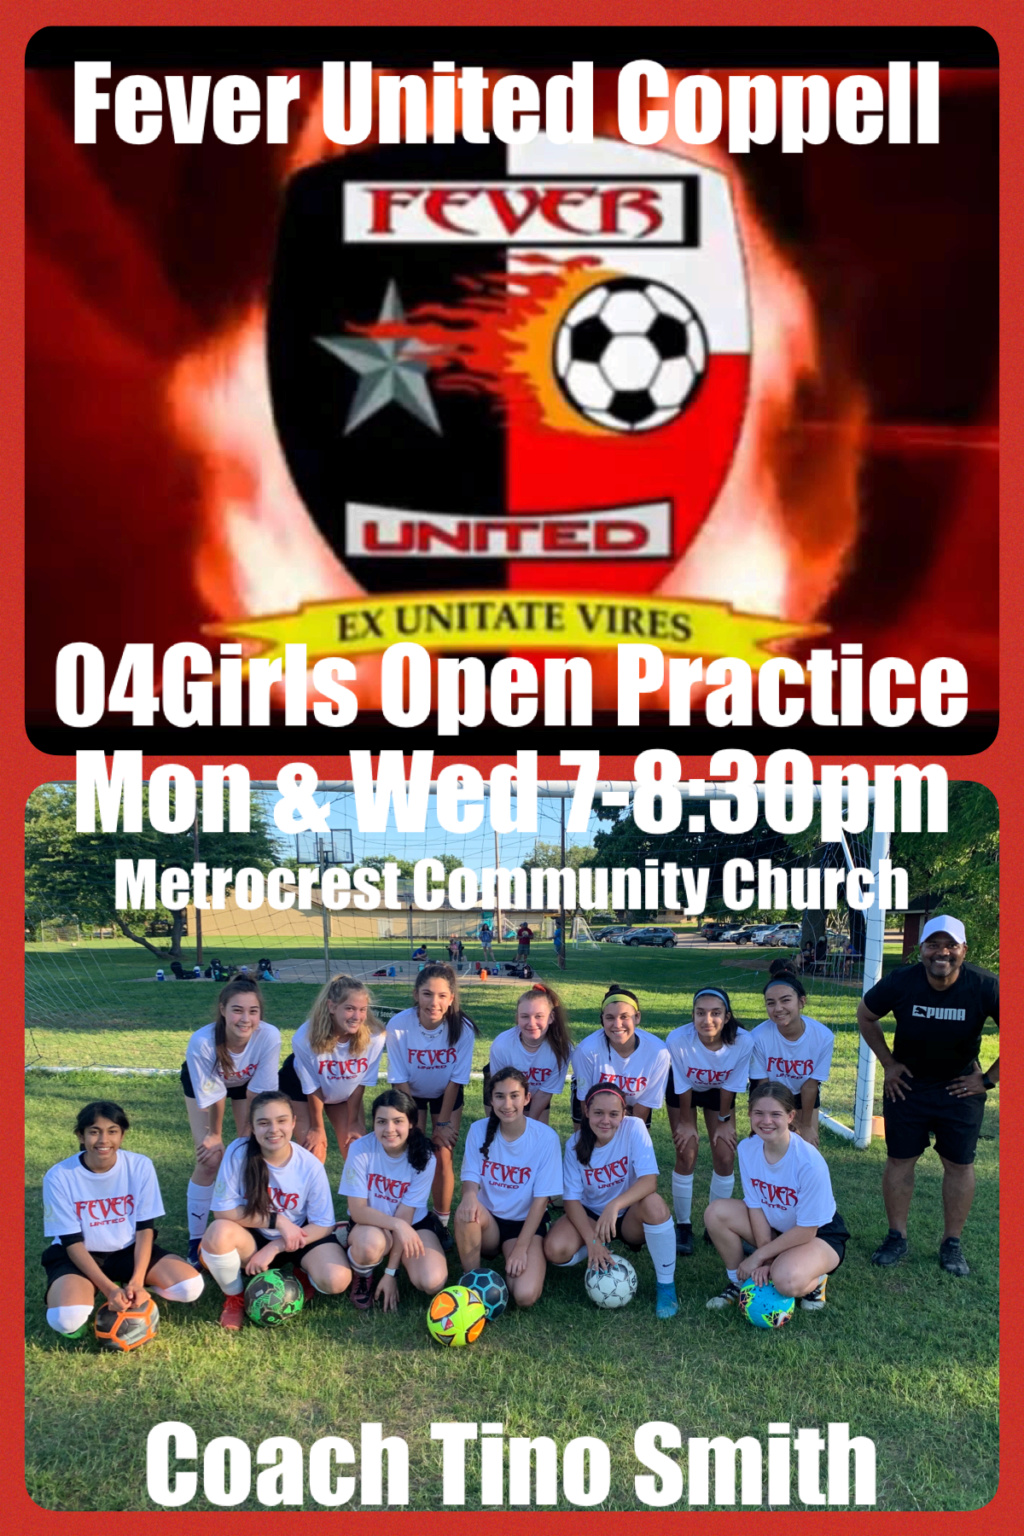 Fever United 04G Coppell Open Practice 76ba8c10